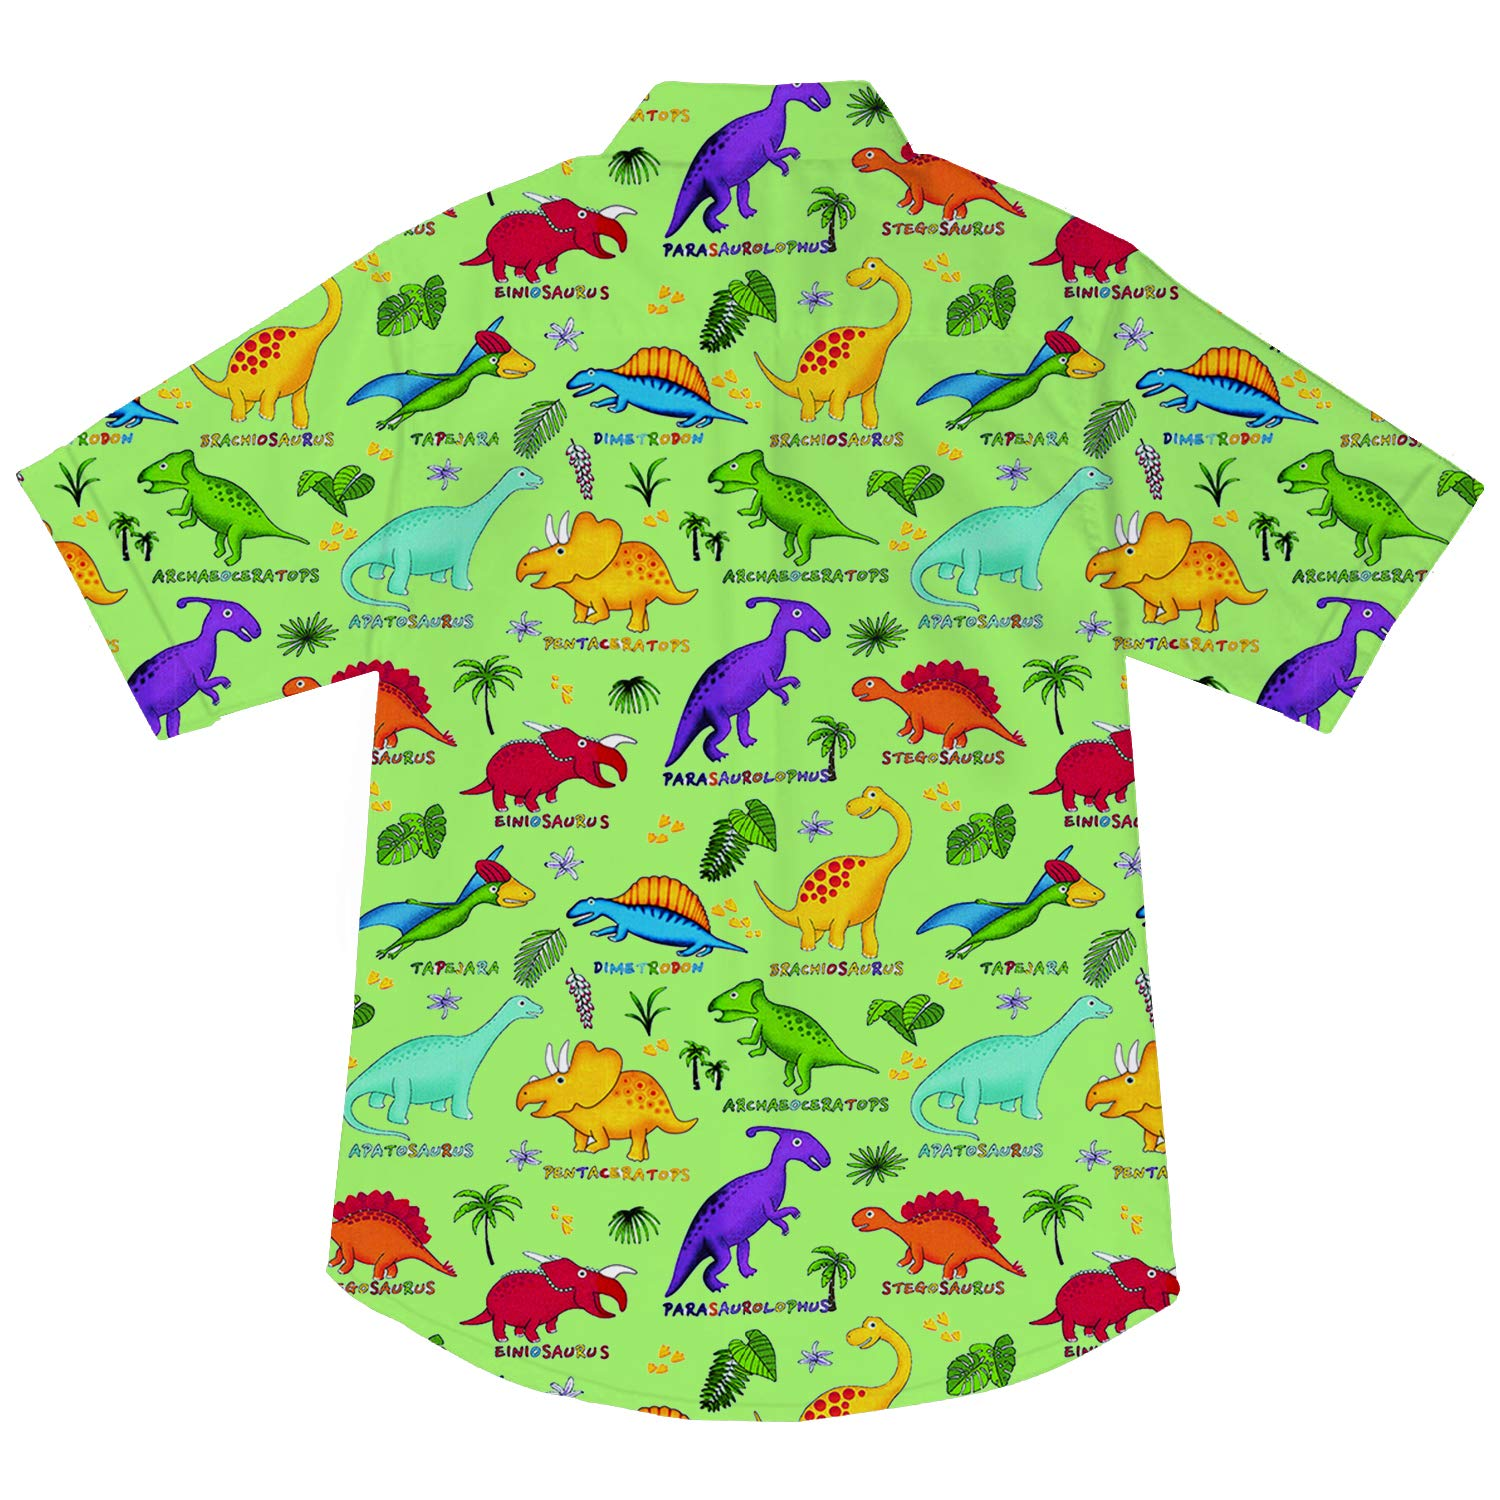 Goodstoworld Boys Button Down Shirts Kids Casual Short Sleeve Cotton Button Up Cool Dinosaur Print Tees Tops Blouse 5-6T by Goodstoworld (Image #3)